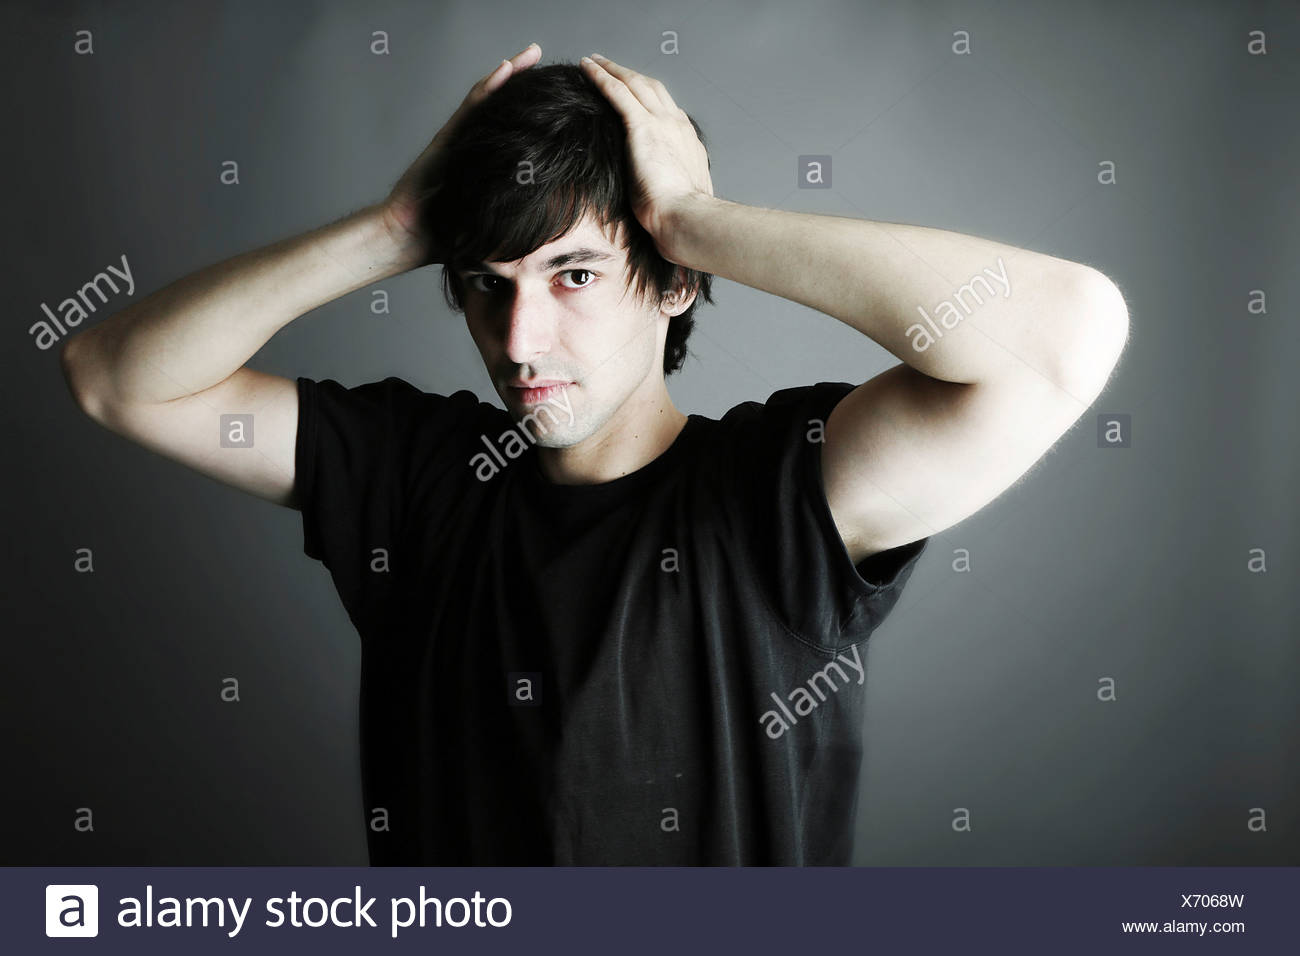 Portrait of young man against grey background, close up - Stock Image